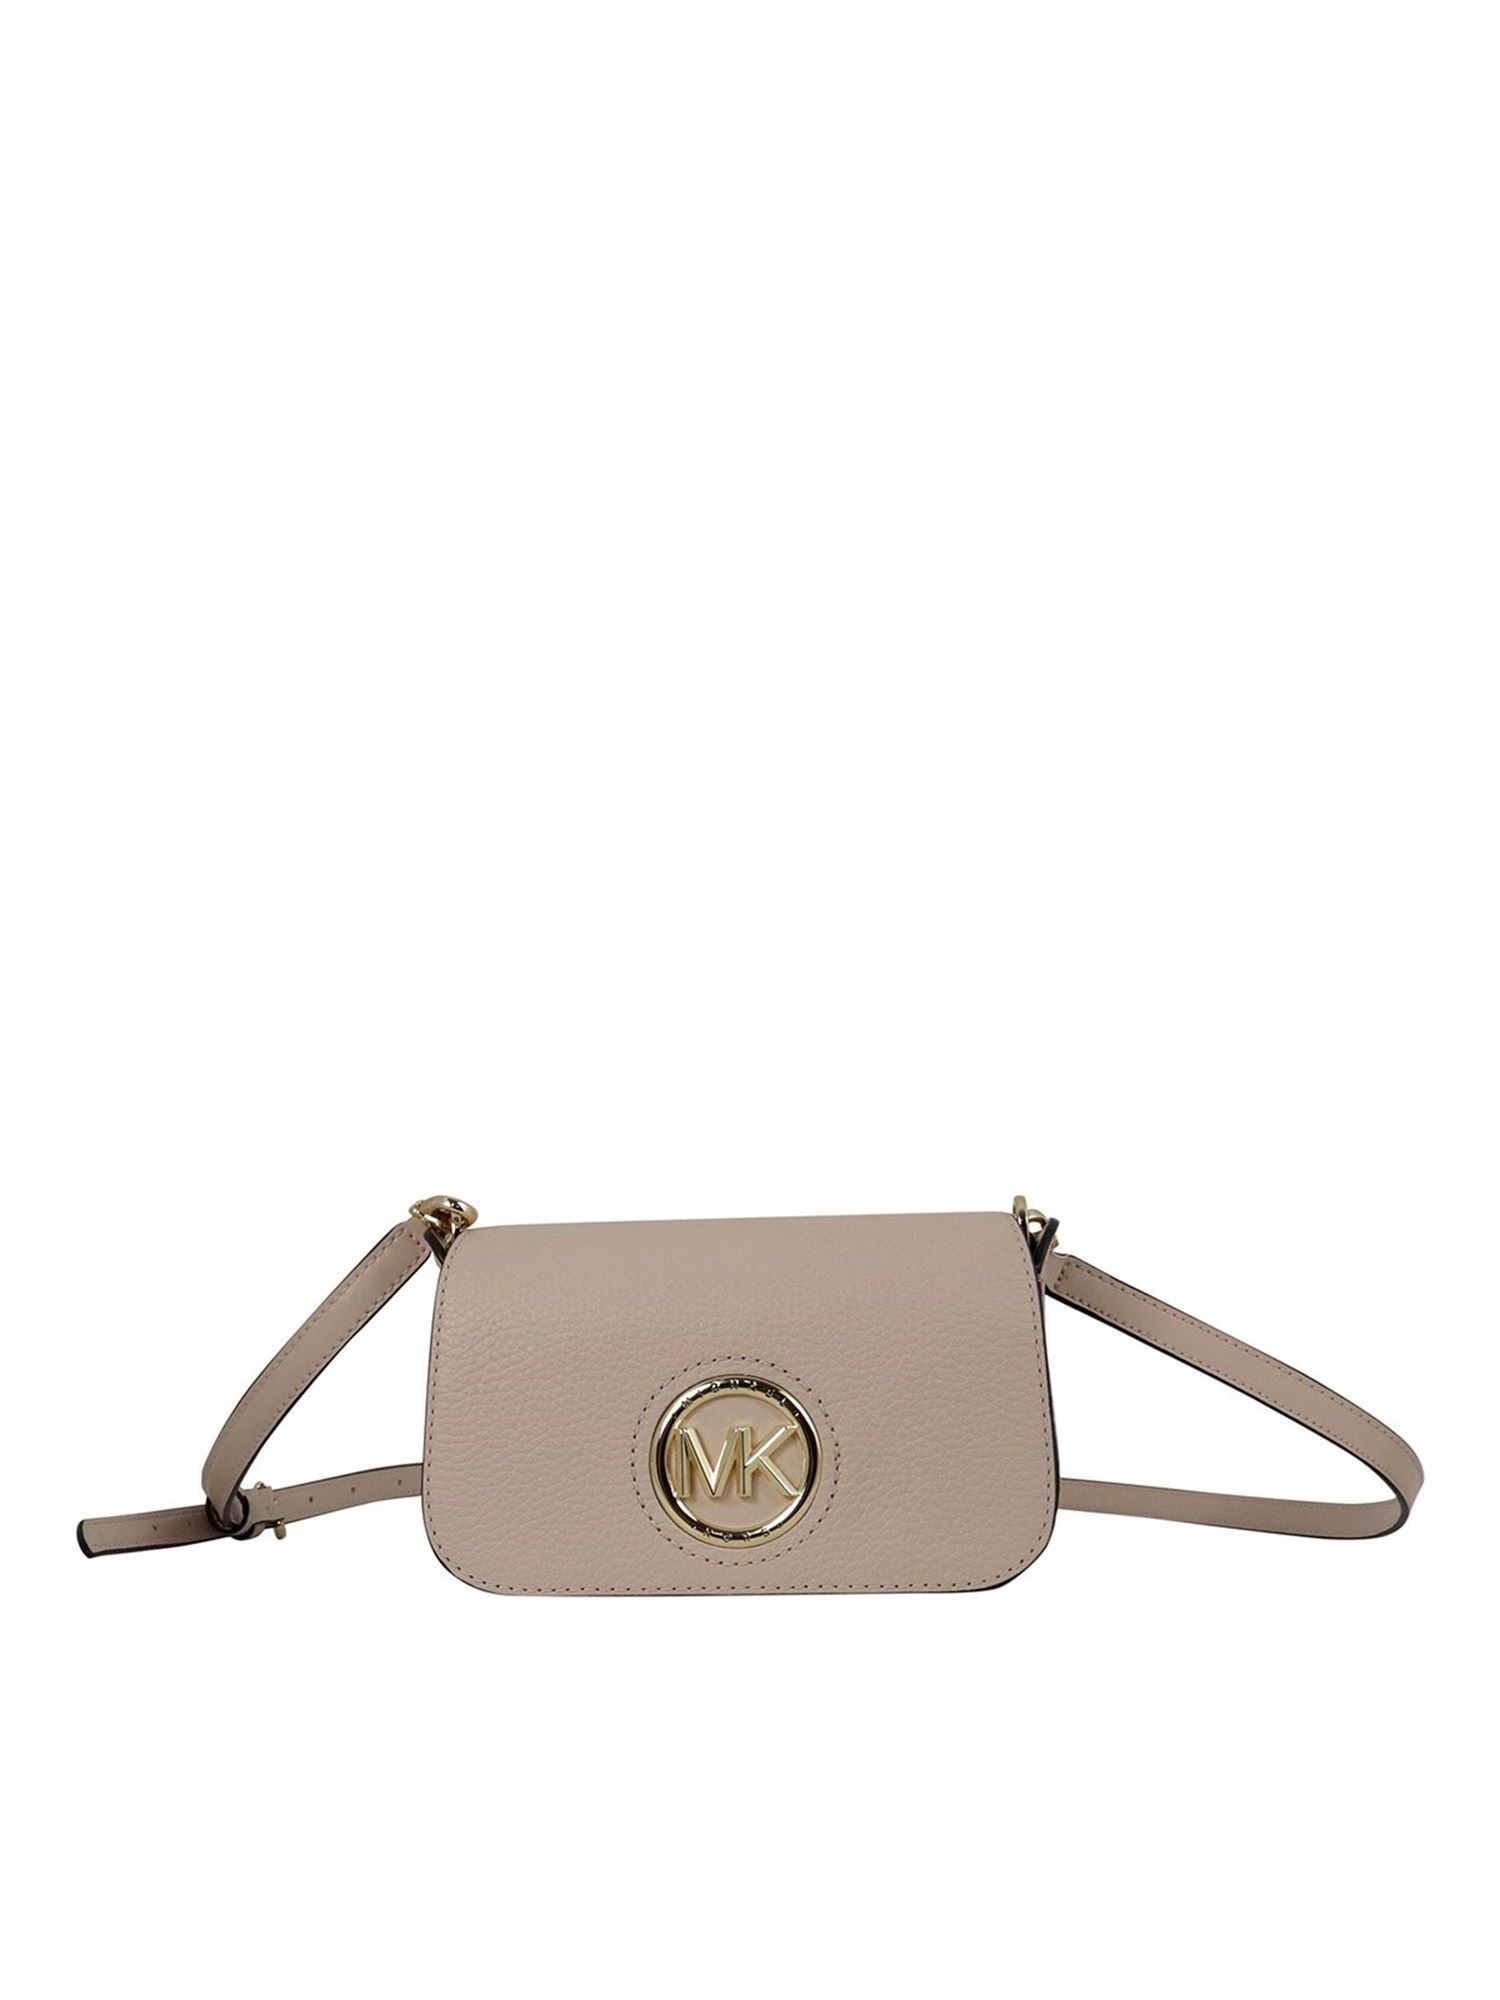 Michael Kors SAMIRA CROSS BODY BAG IN PINK